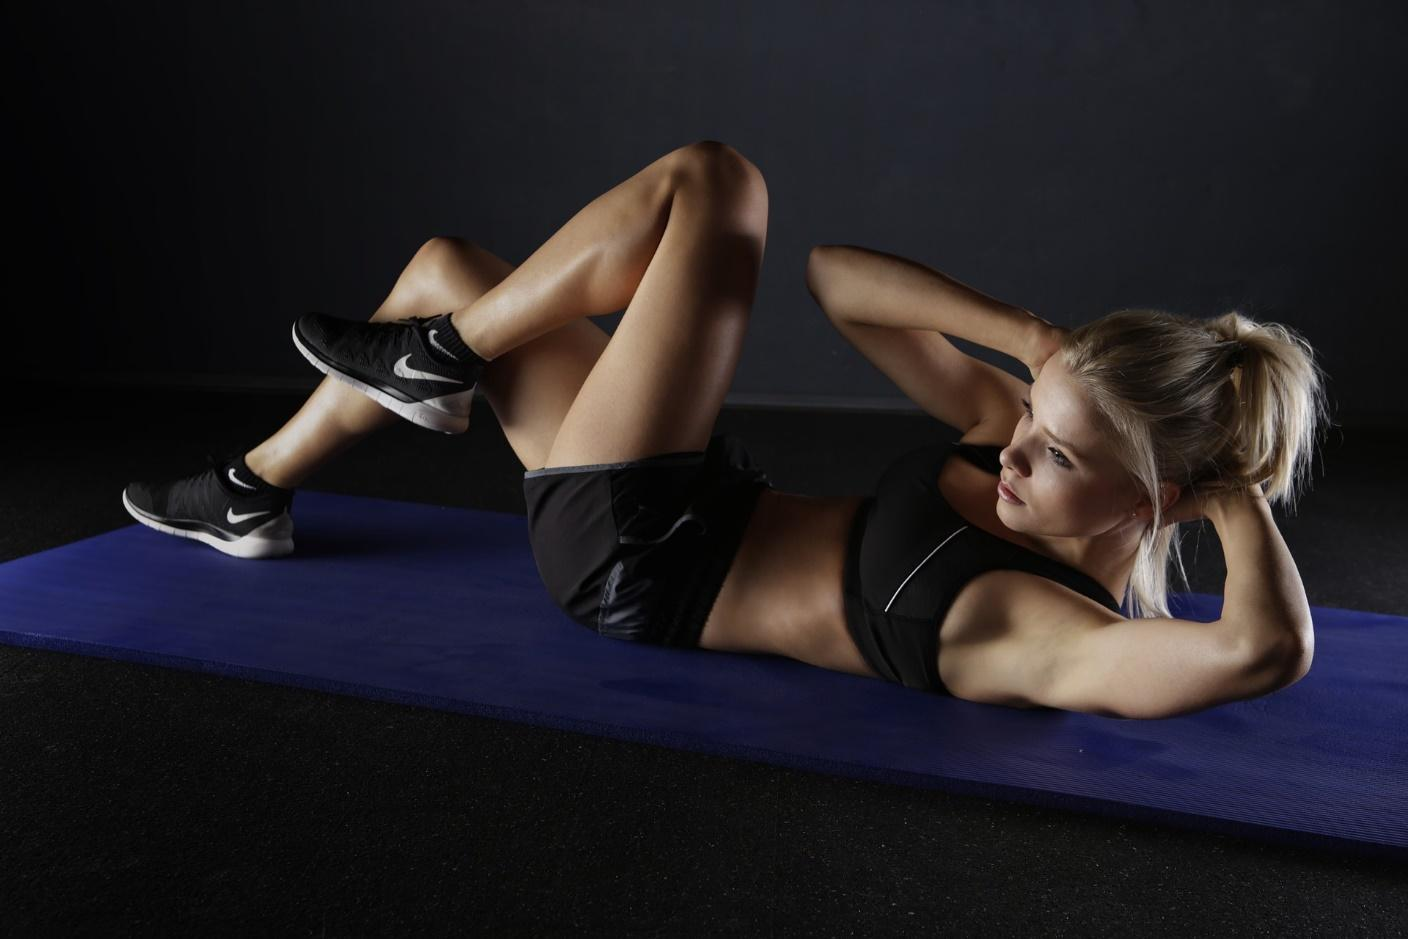 5 Easy Target Exercises to Lose Belly Fat = Crunches